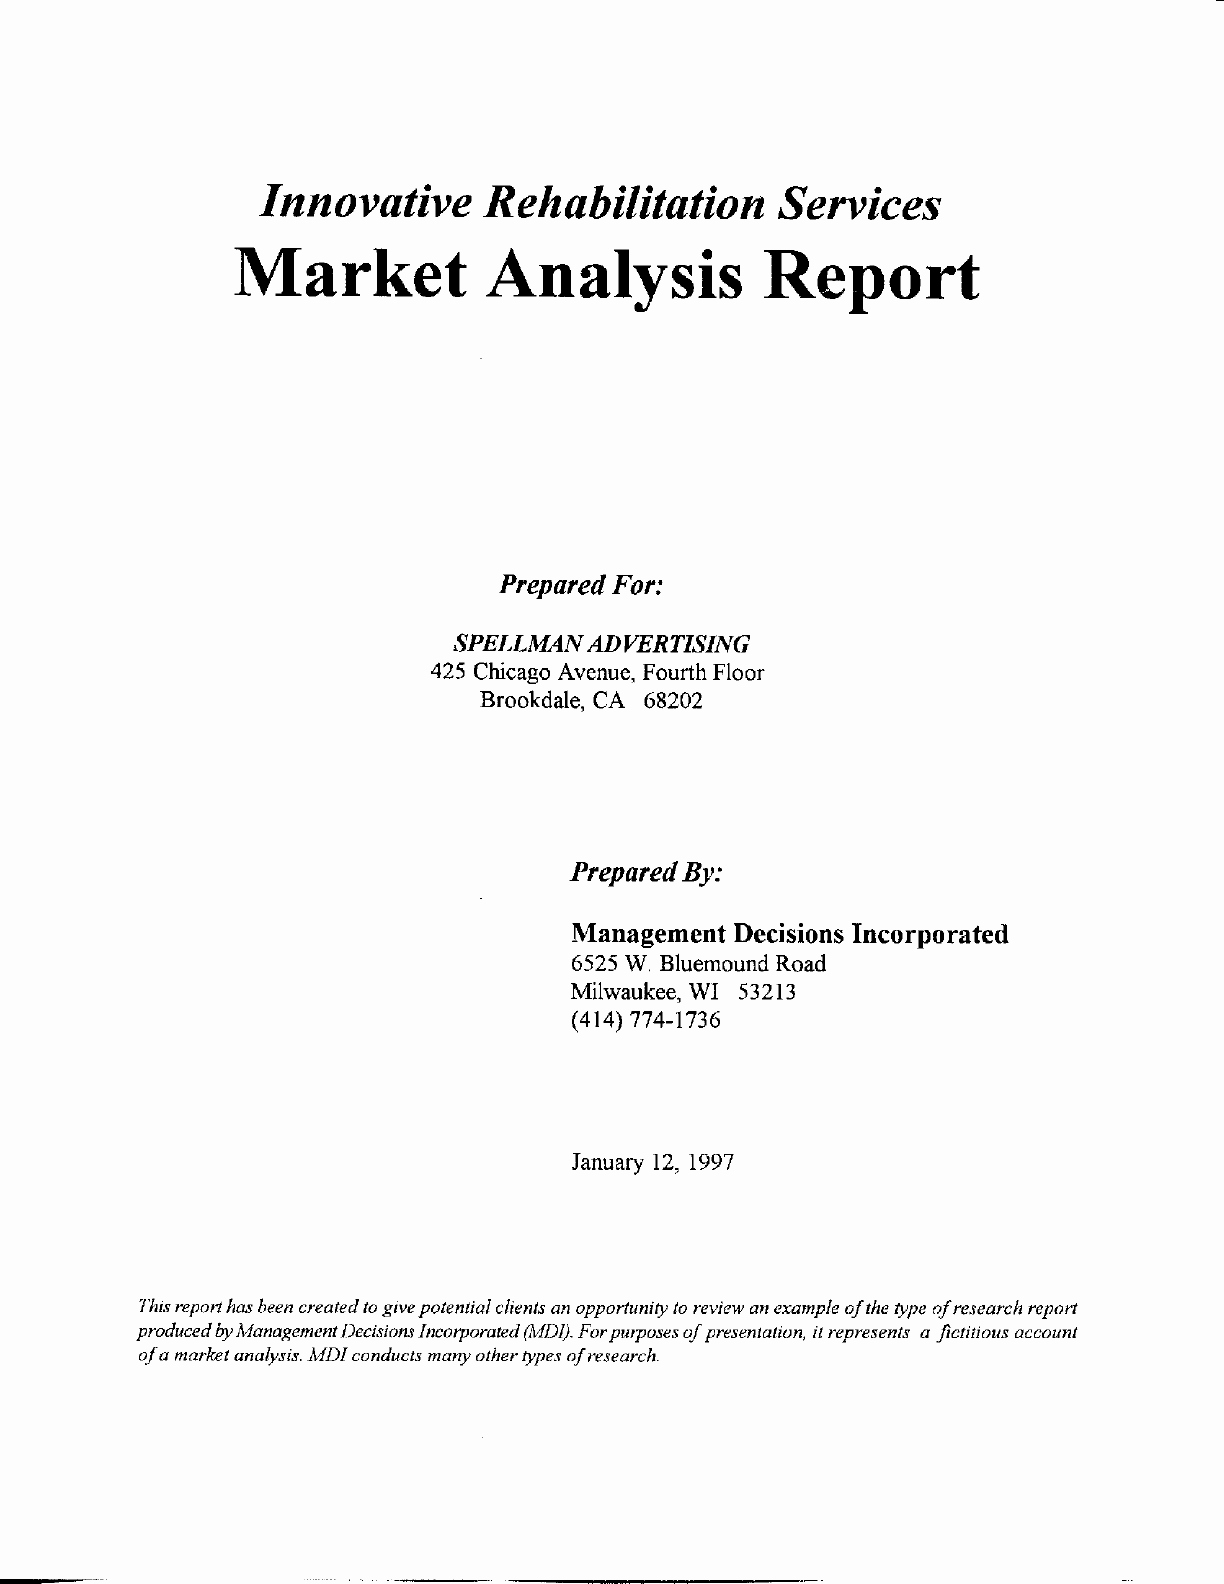 Market Analysis Report Template Fresh Free Download Market Analysis Report Template Sample Thogati